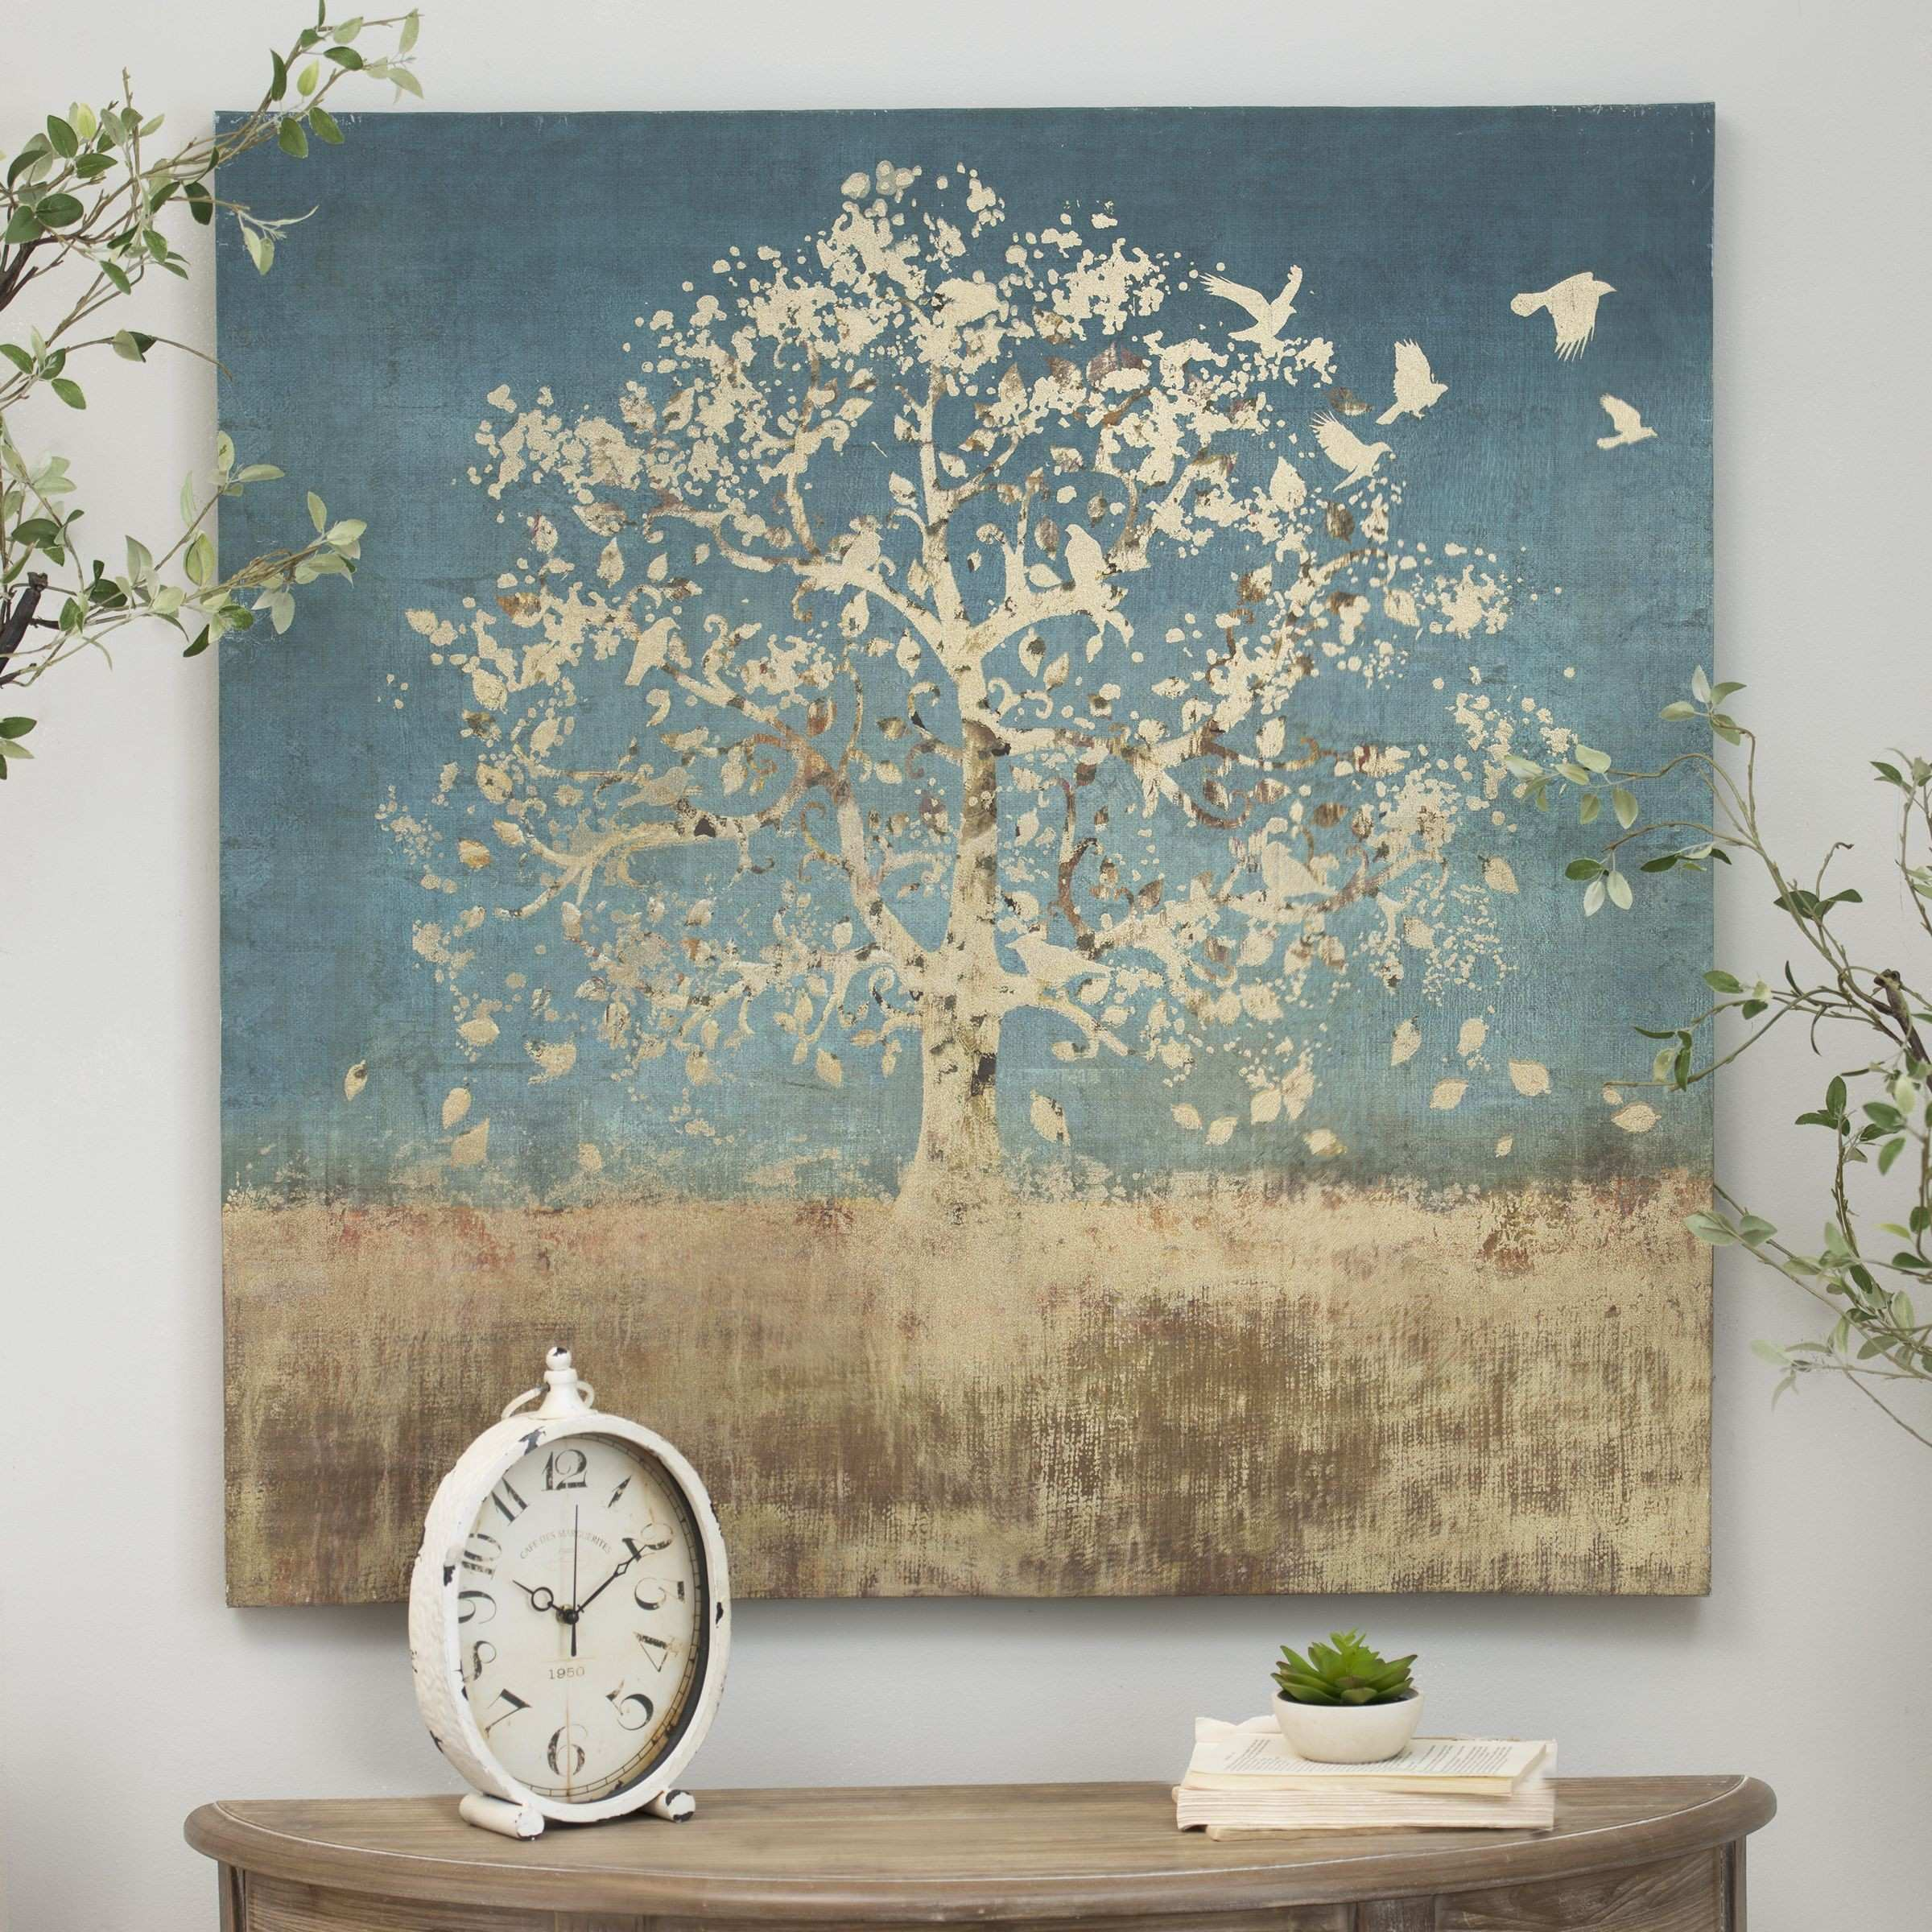 In the market to give your wall decor a new look for the new year